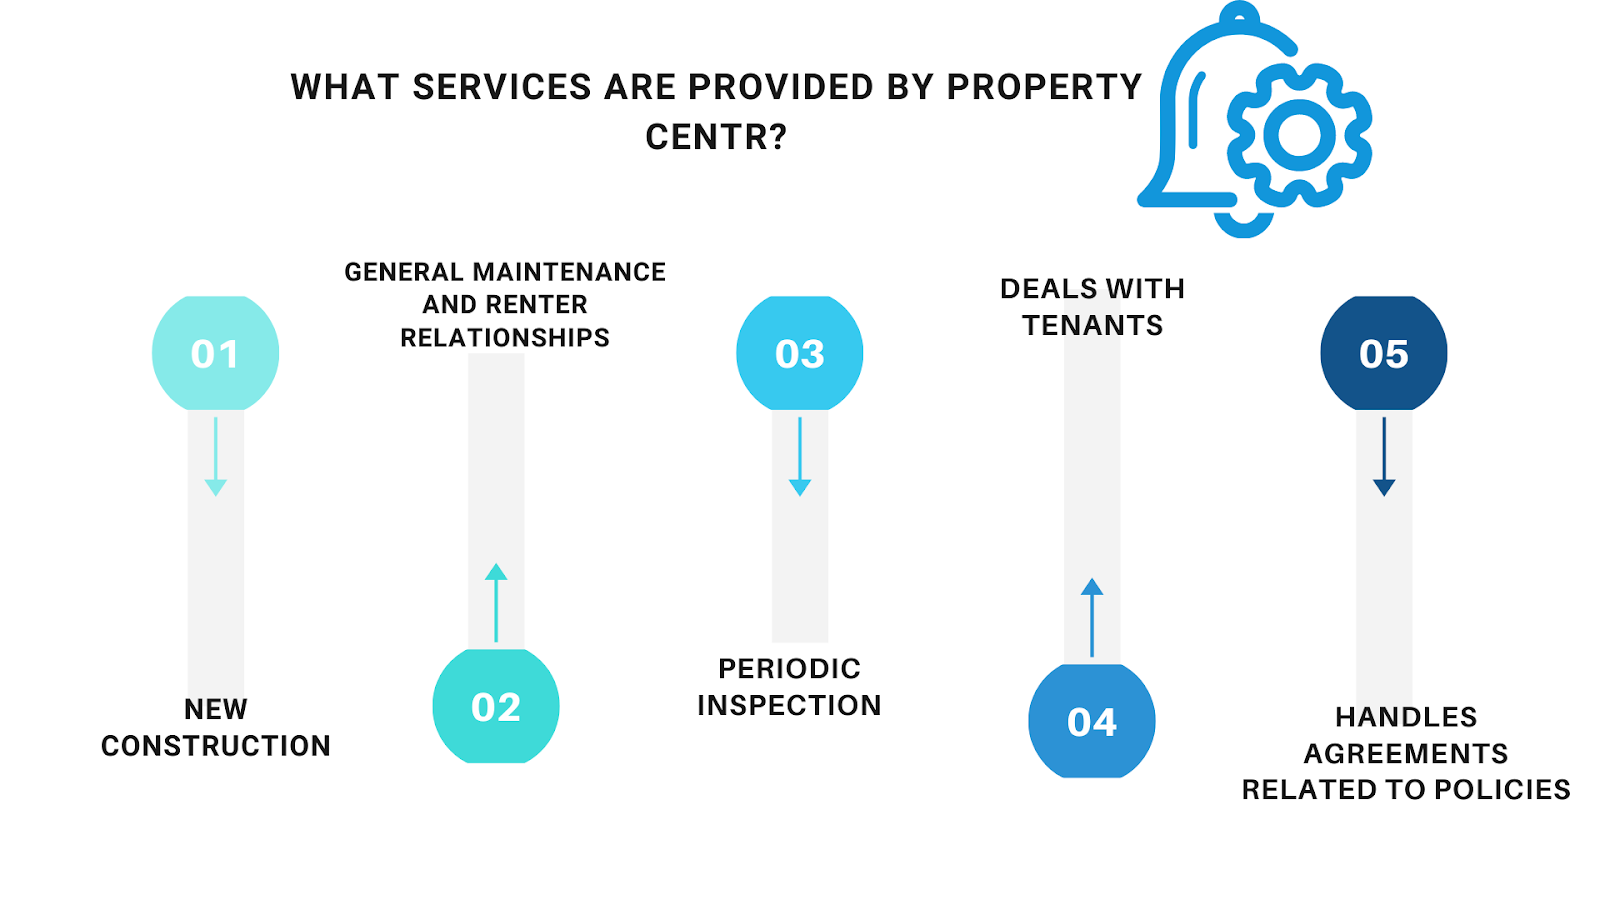 Services of the property center